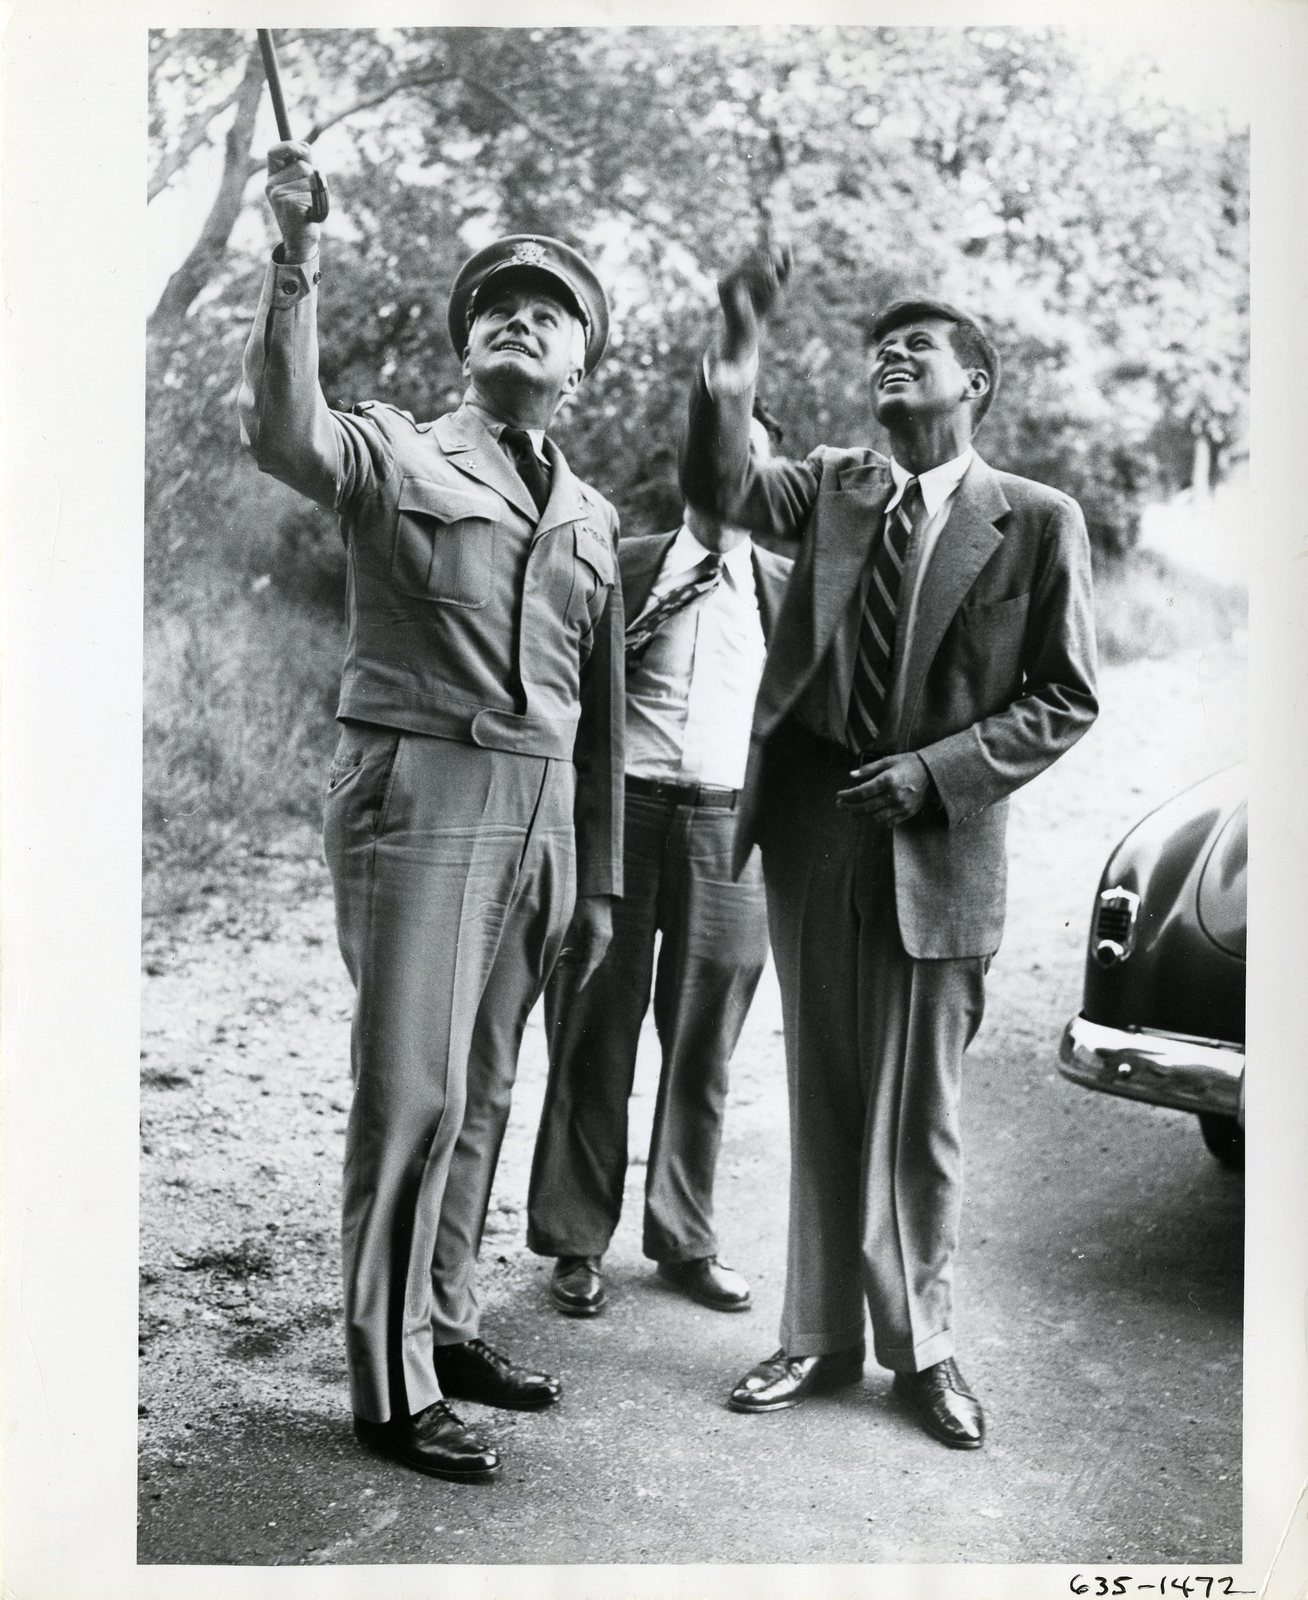 Senator John F. Kennedy and an Officer Stand Outside on a Road, Both Pointing Up